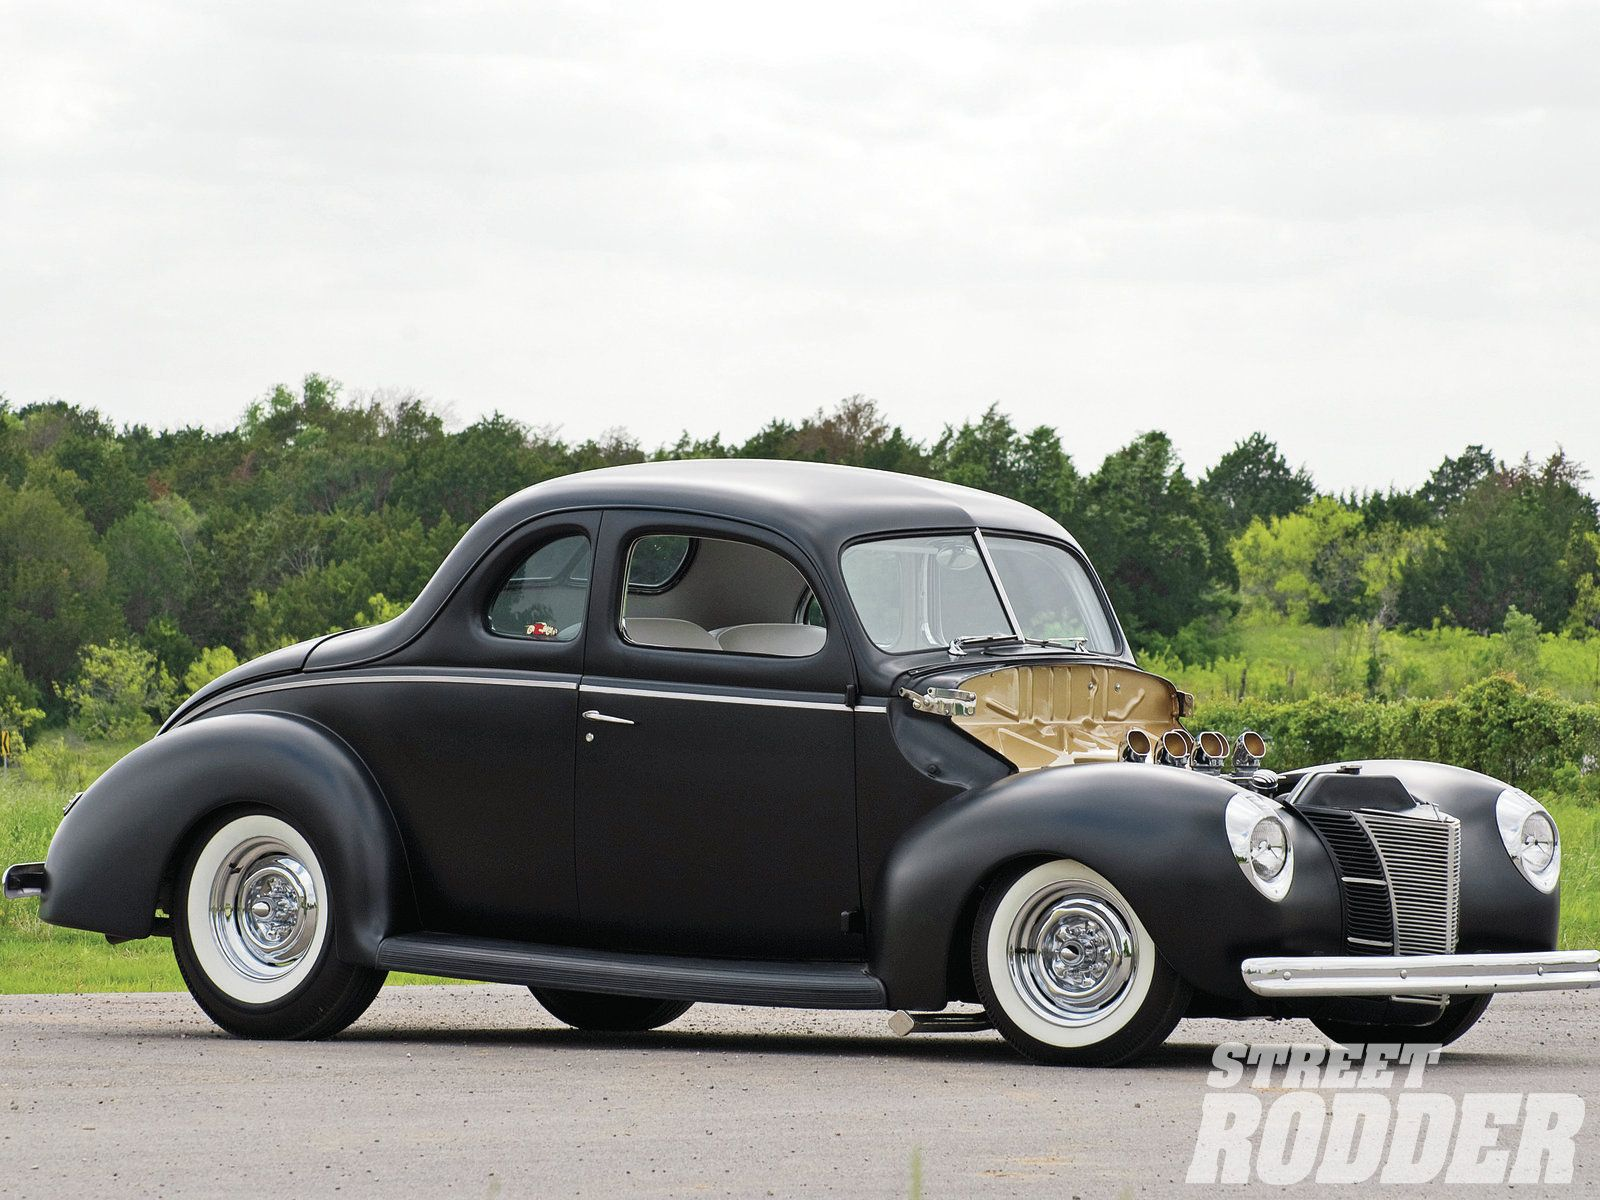 1940 Ford Deluxe Coupe Hot Rods Cars Muscle 1940 Ford 1940 Ford Coupe